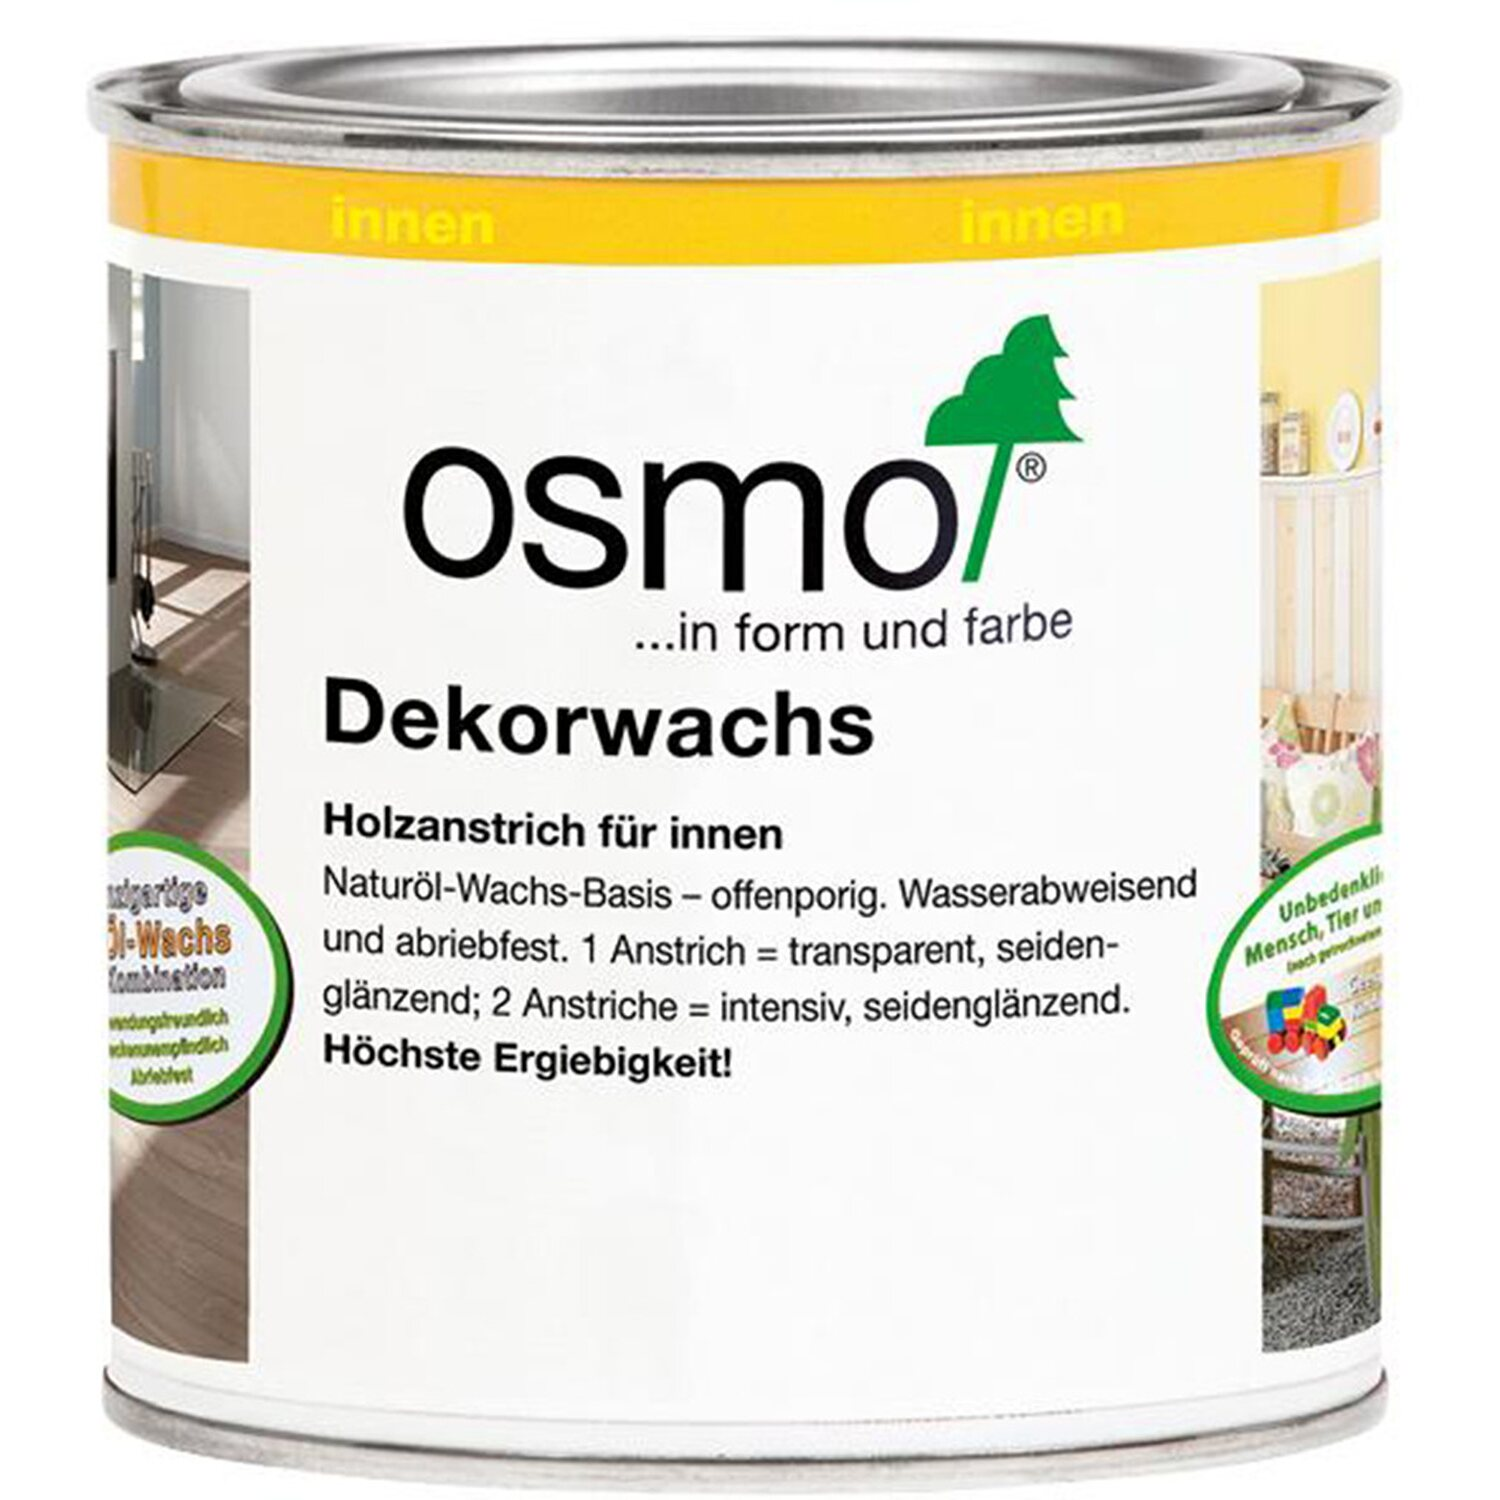 Osmo Dekorwachs Transparent Farblos 375 ml